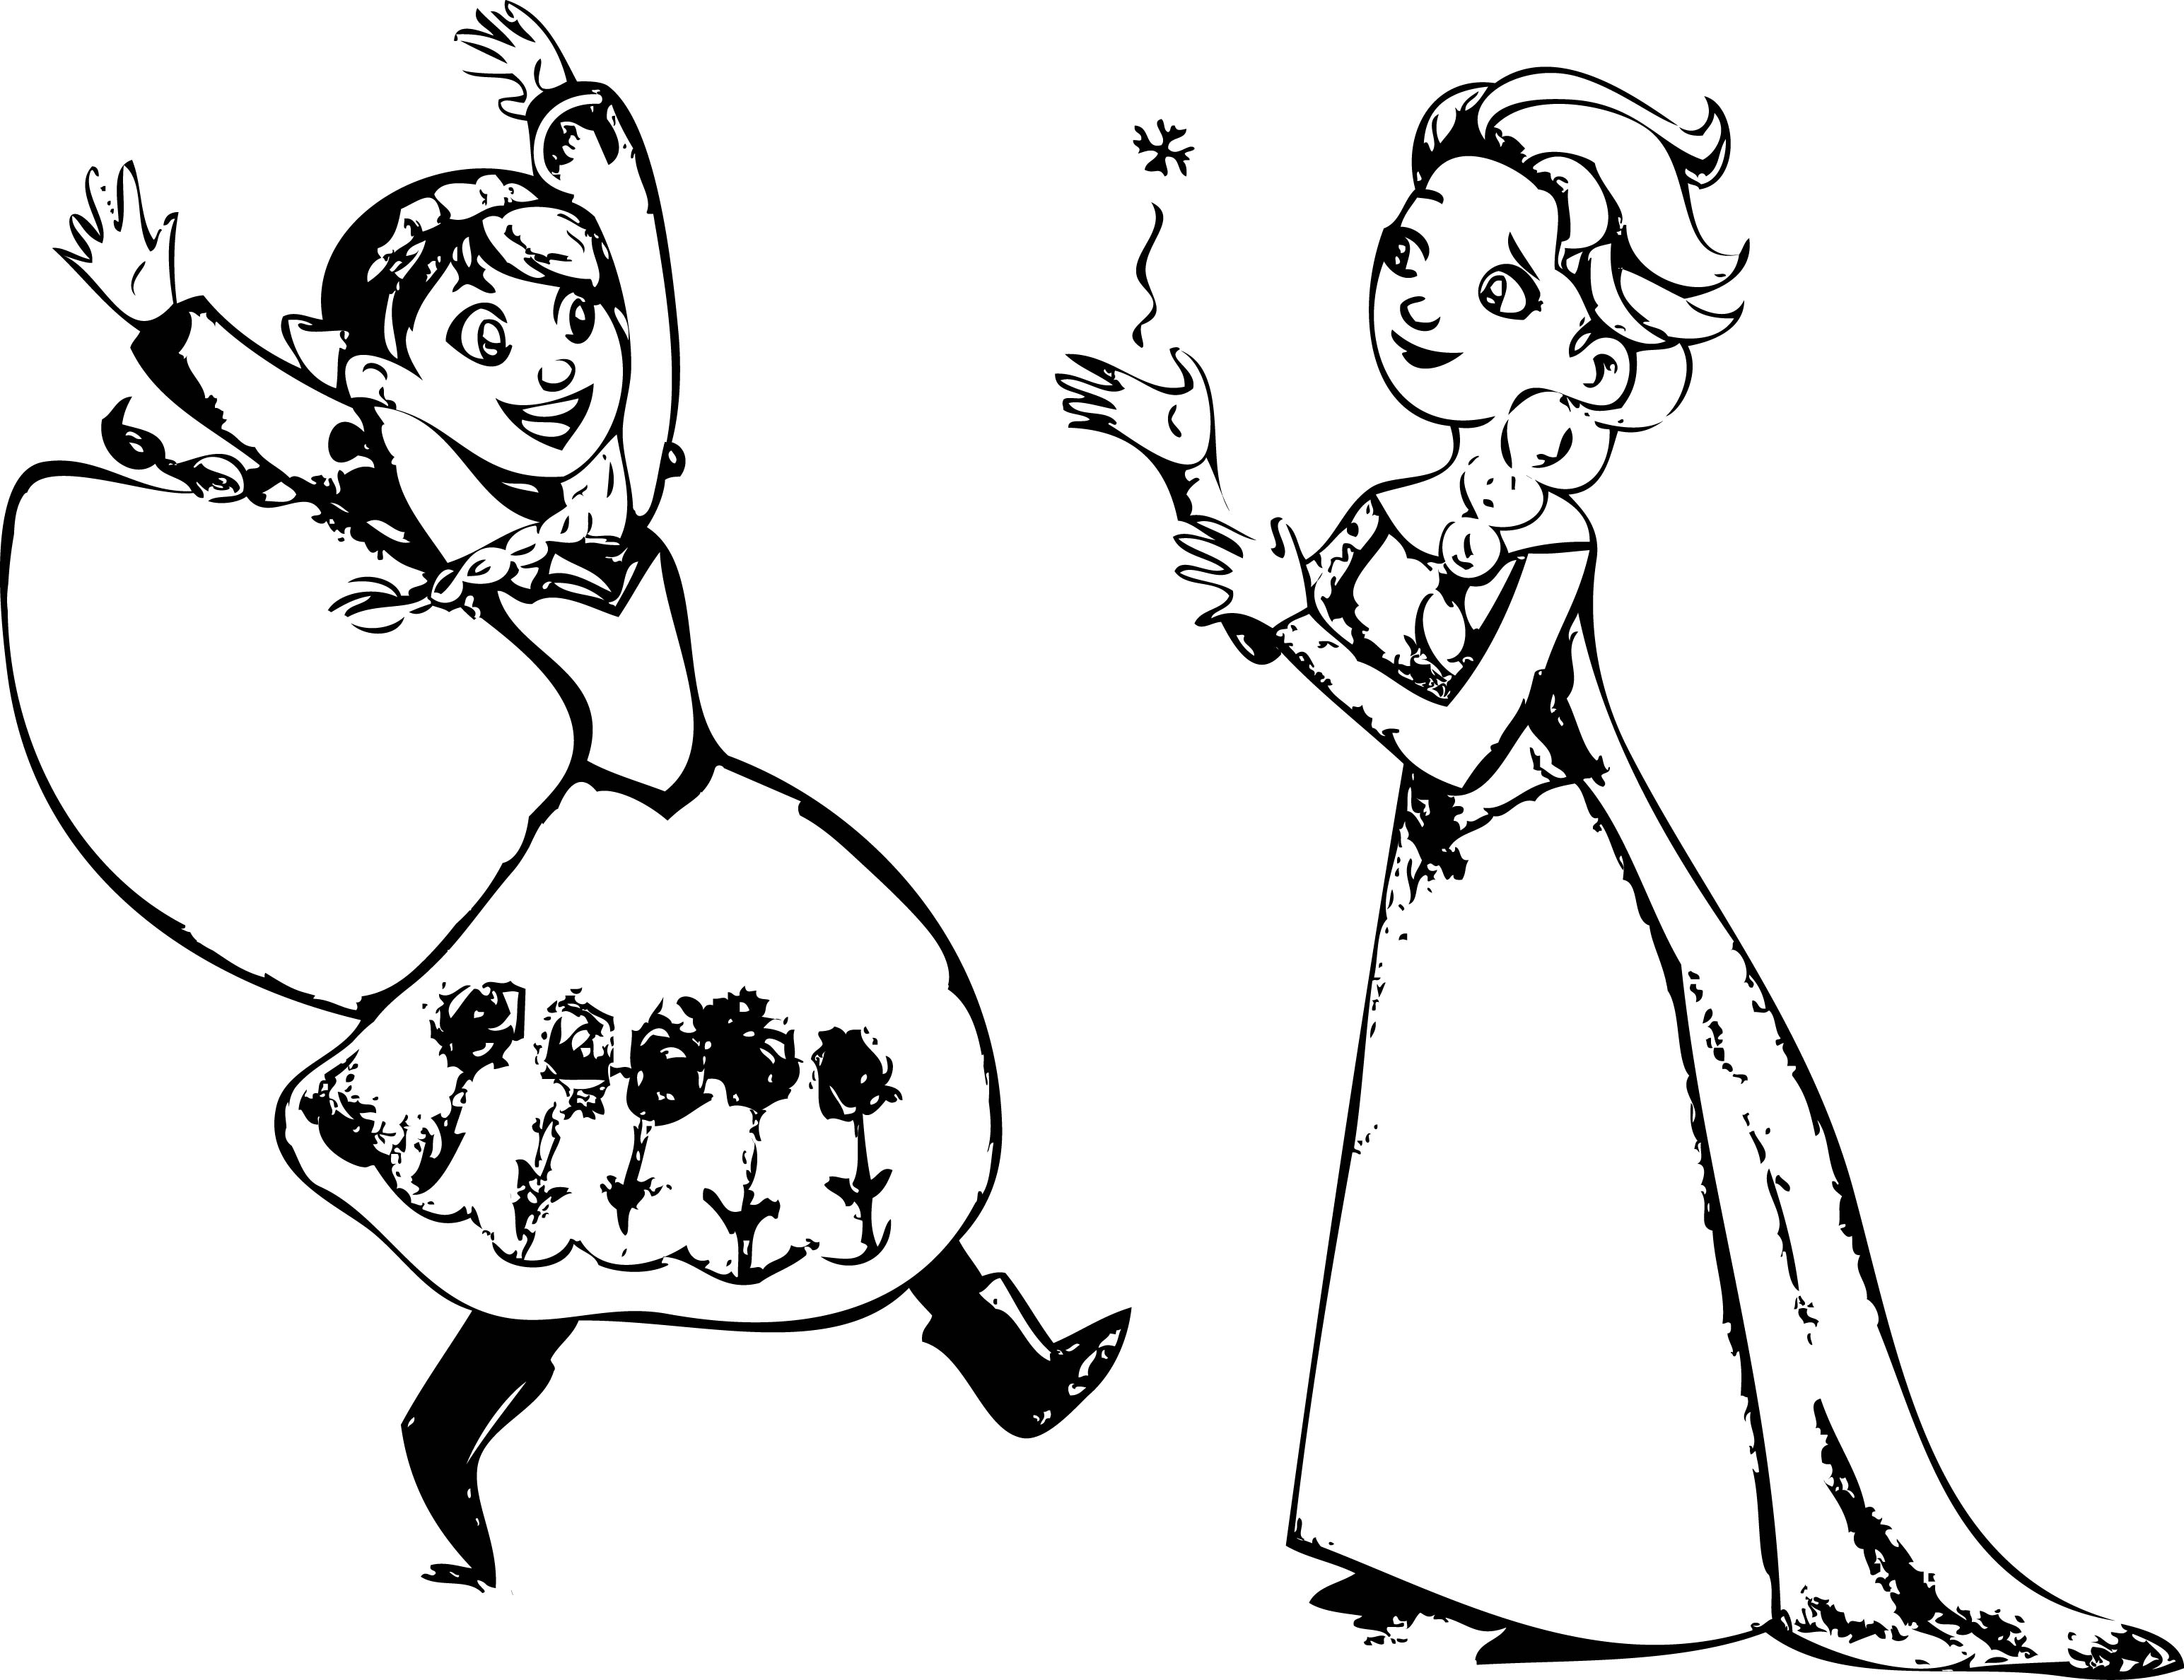 frozen cartoon characters coloring pages - photo#27